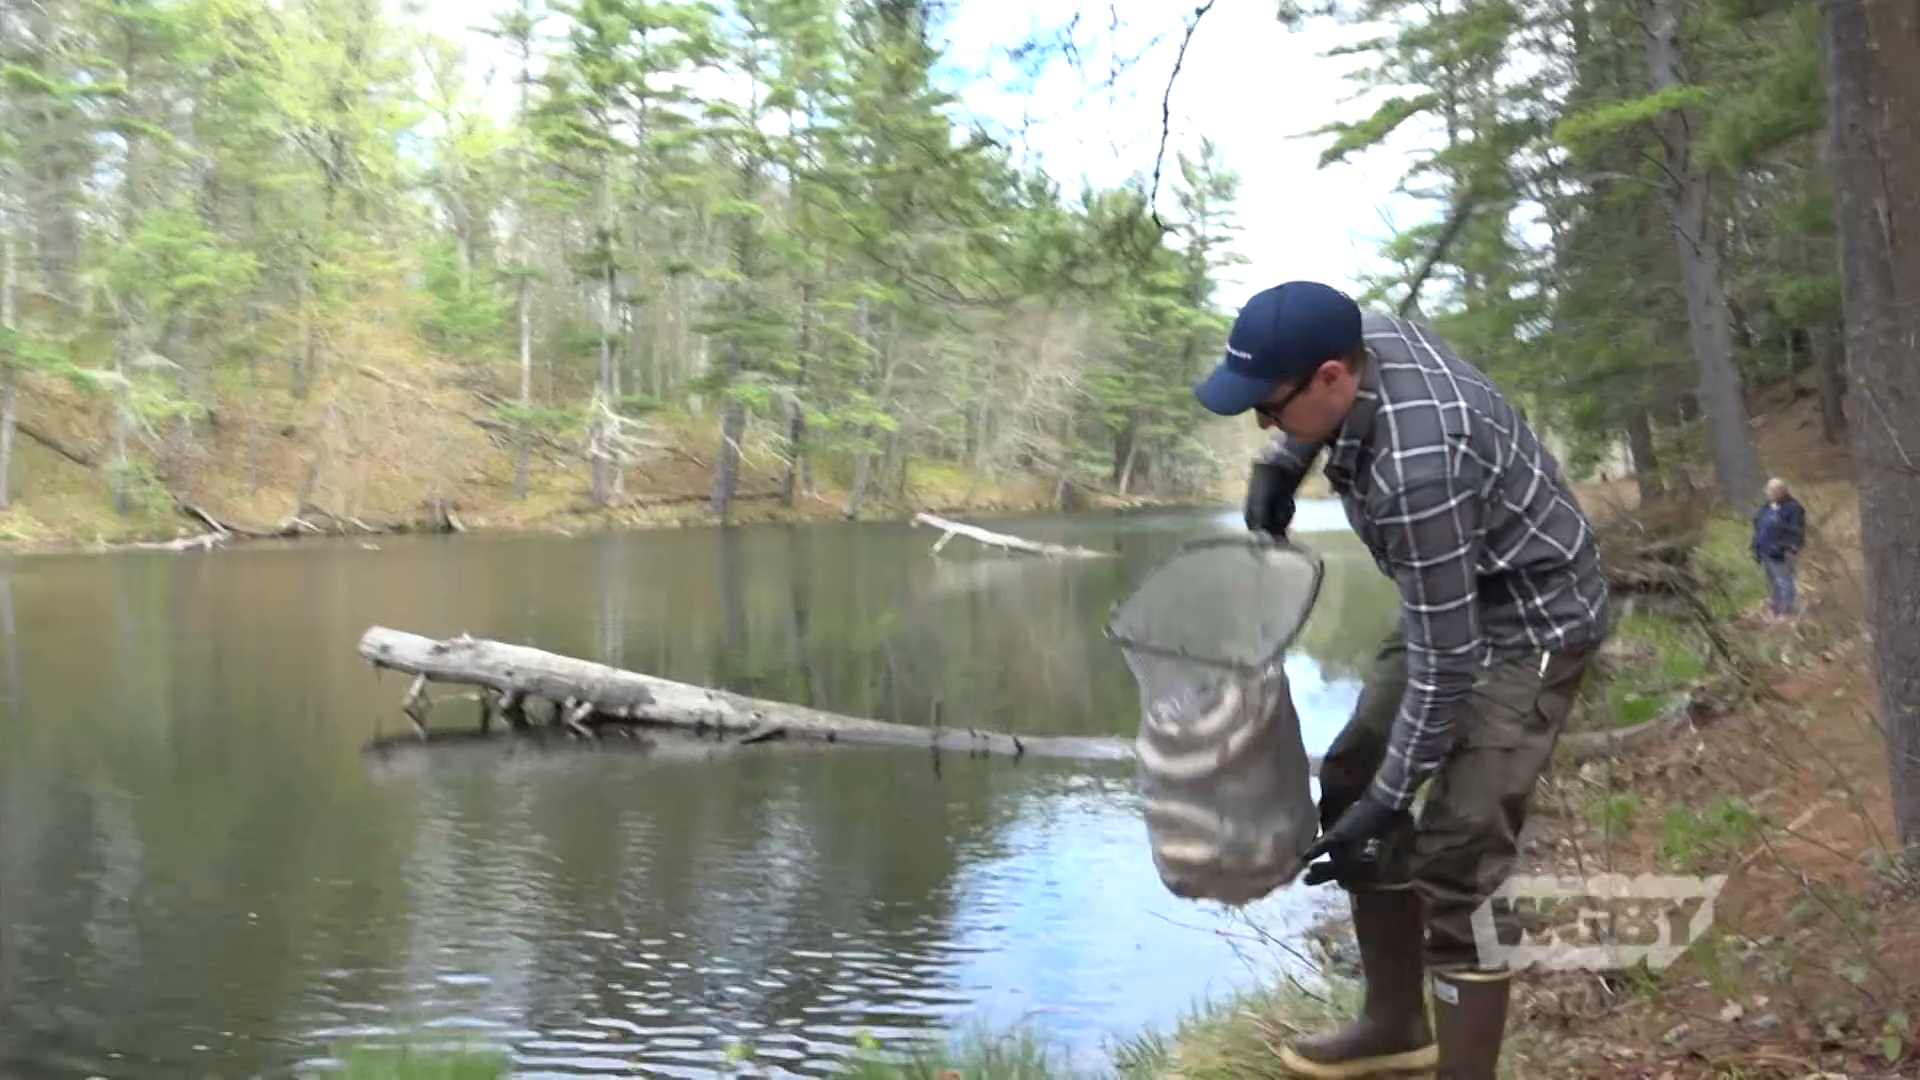 Trout Stocking with Mass Wildlife Division